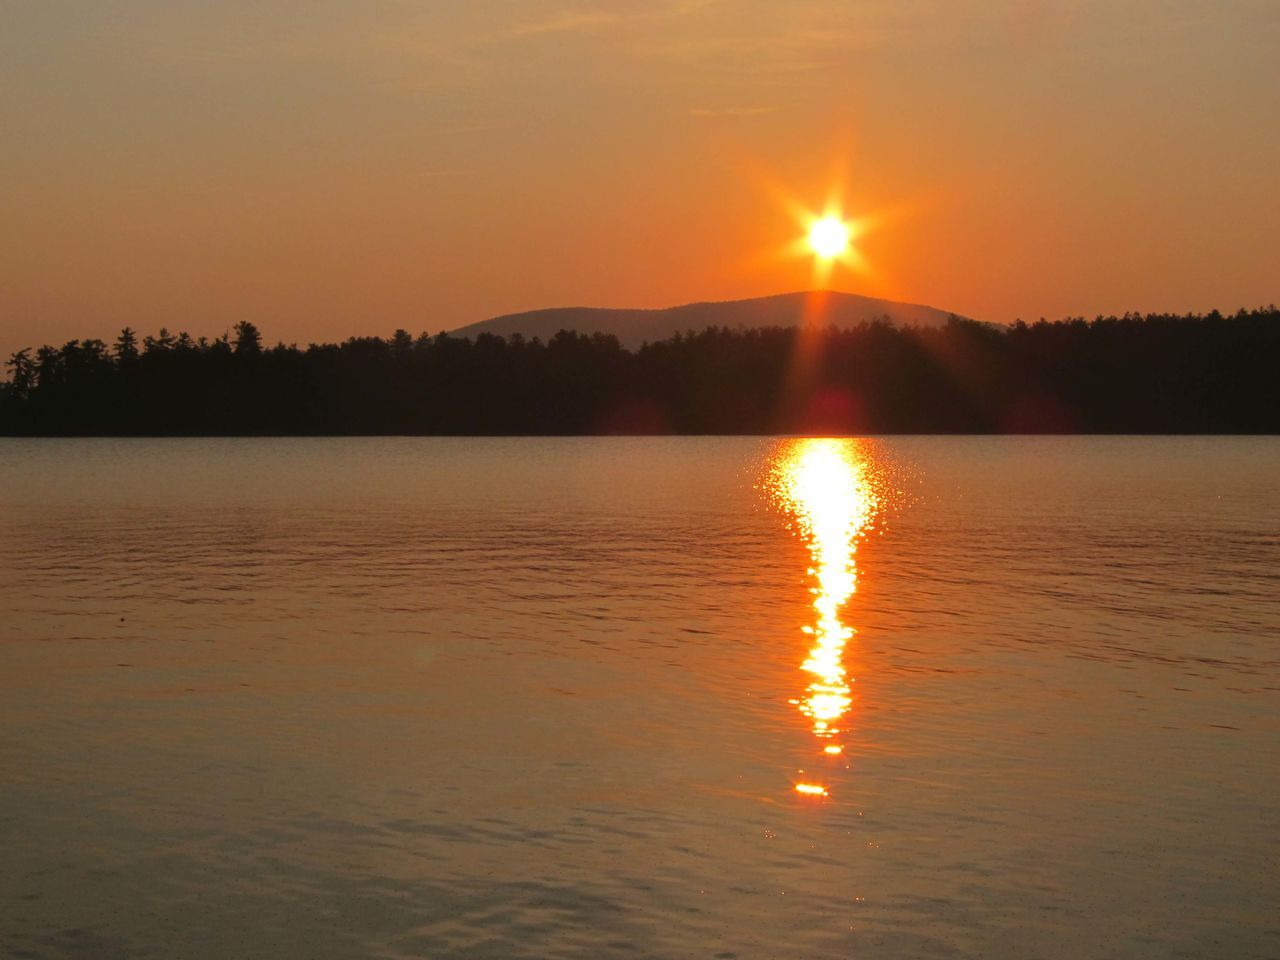 sunset, sun, reflection, nature, beauty in nature, orange color, scenics, tranquility, tranquil scene, no people, water, sunlight, silhouette, sky, outdoors, lake, tree